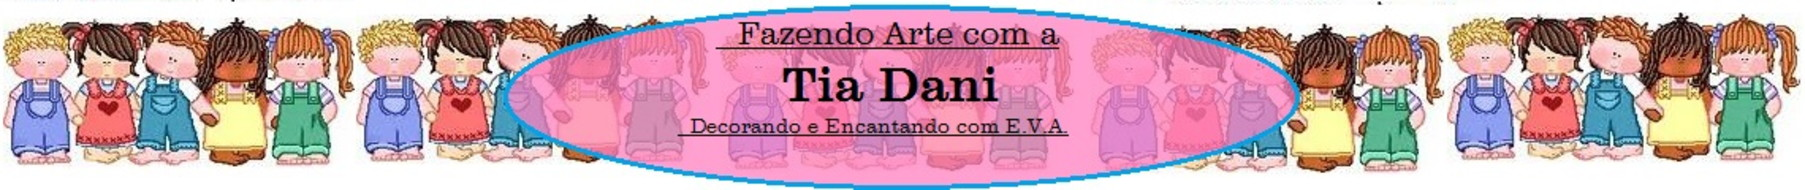 Fazendo Arte com Tia Dani